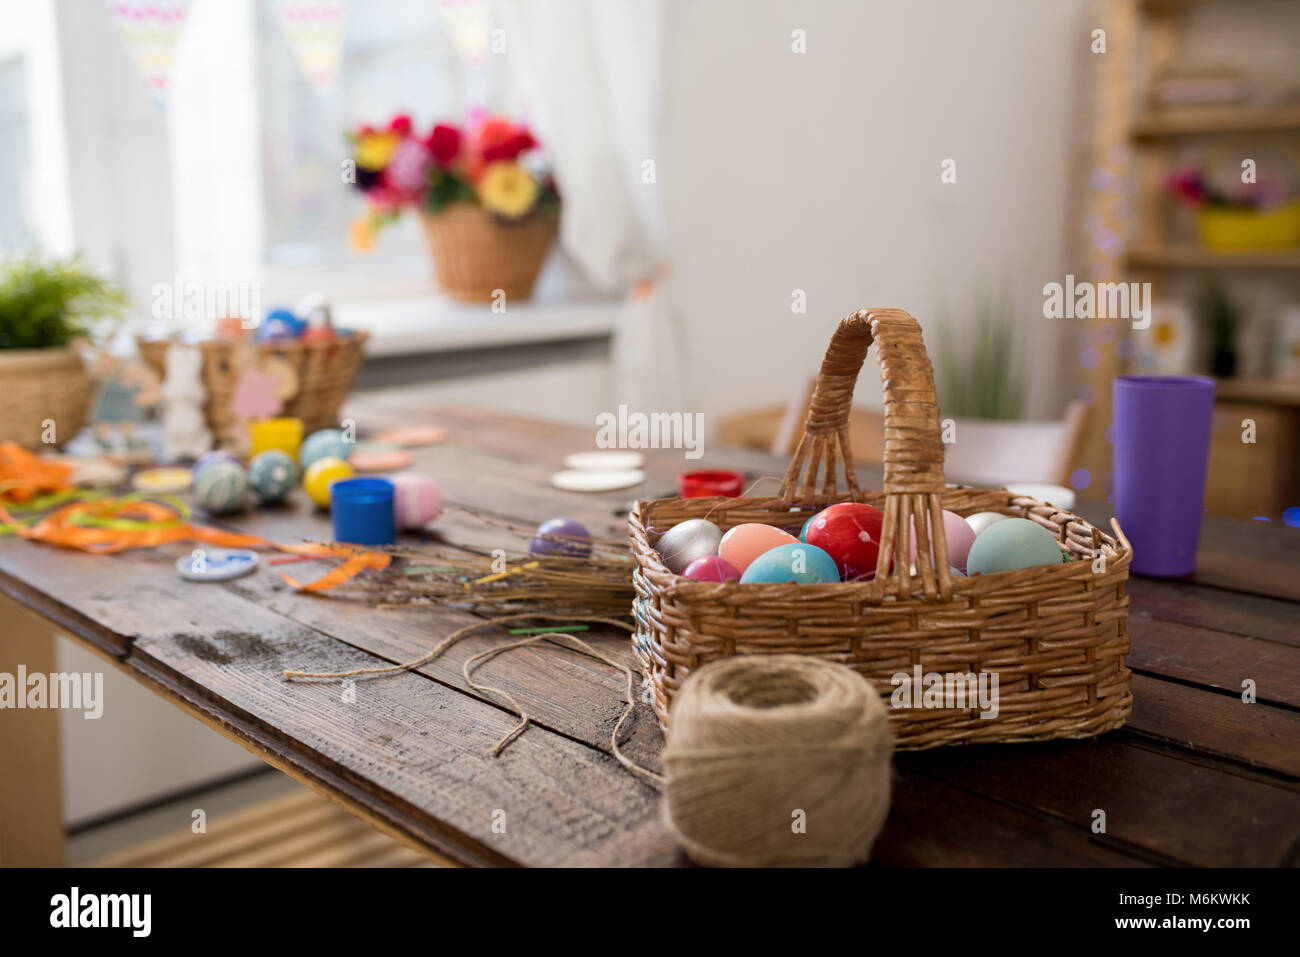 Basket of Easter Eggs on Crafting Table - Stock Image